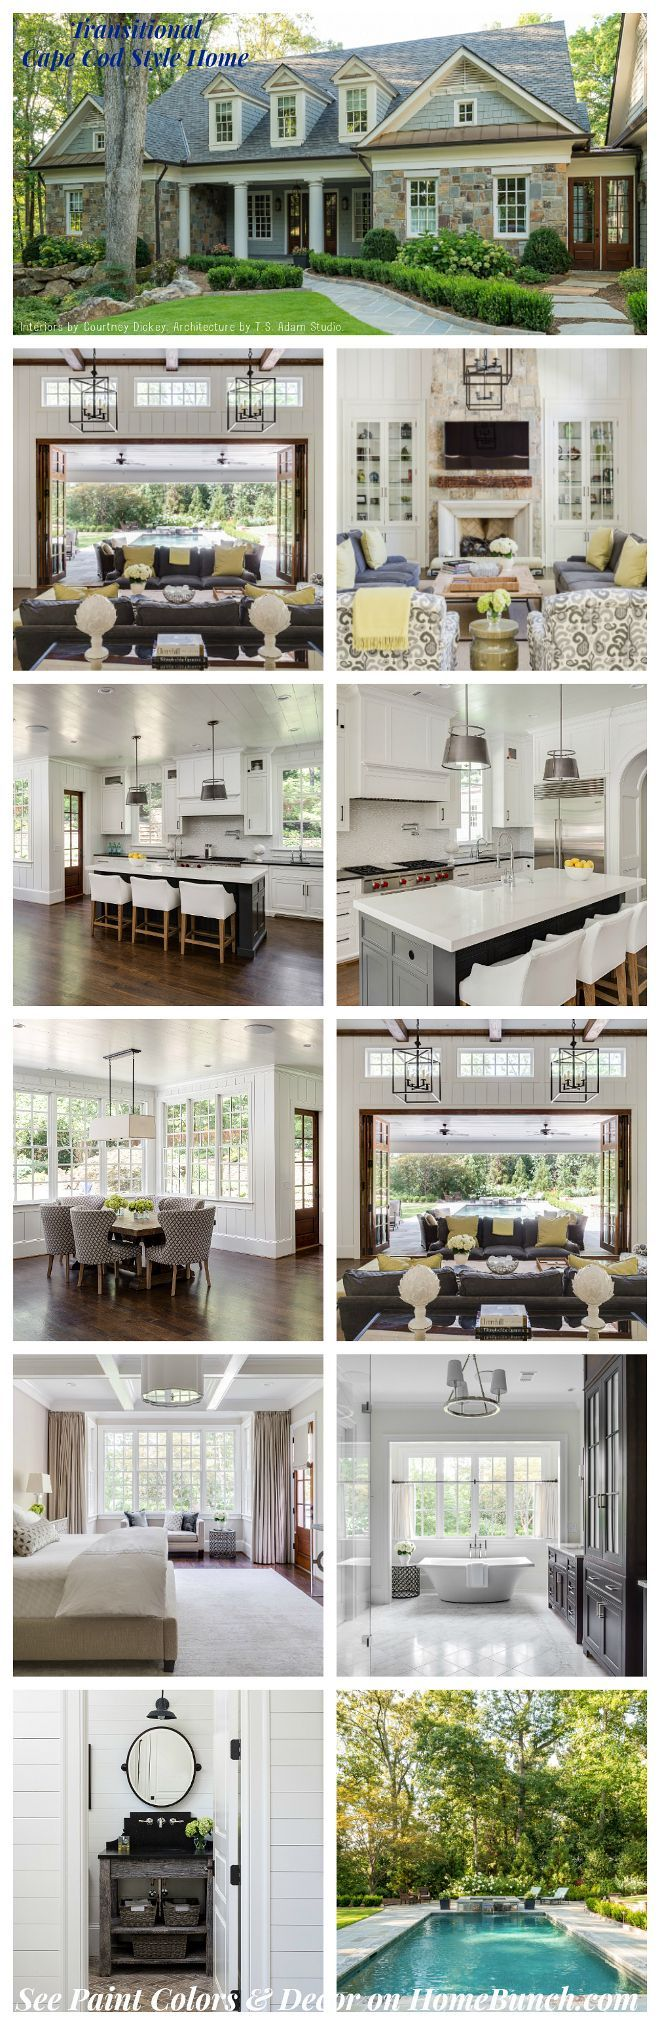 best awesome images on pinterest crown molding diy molding and